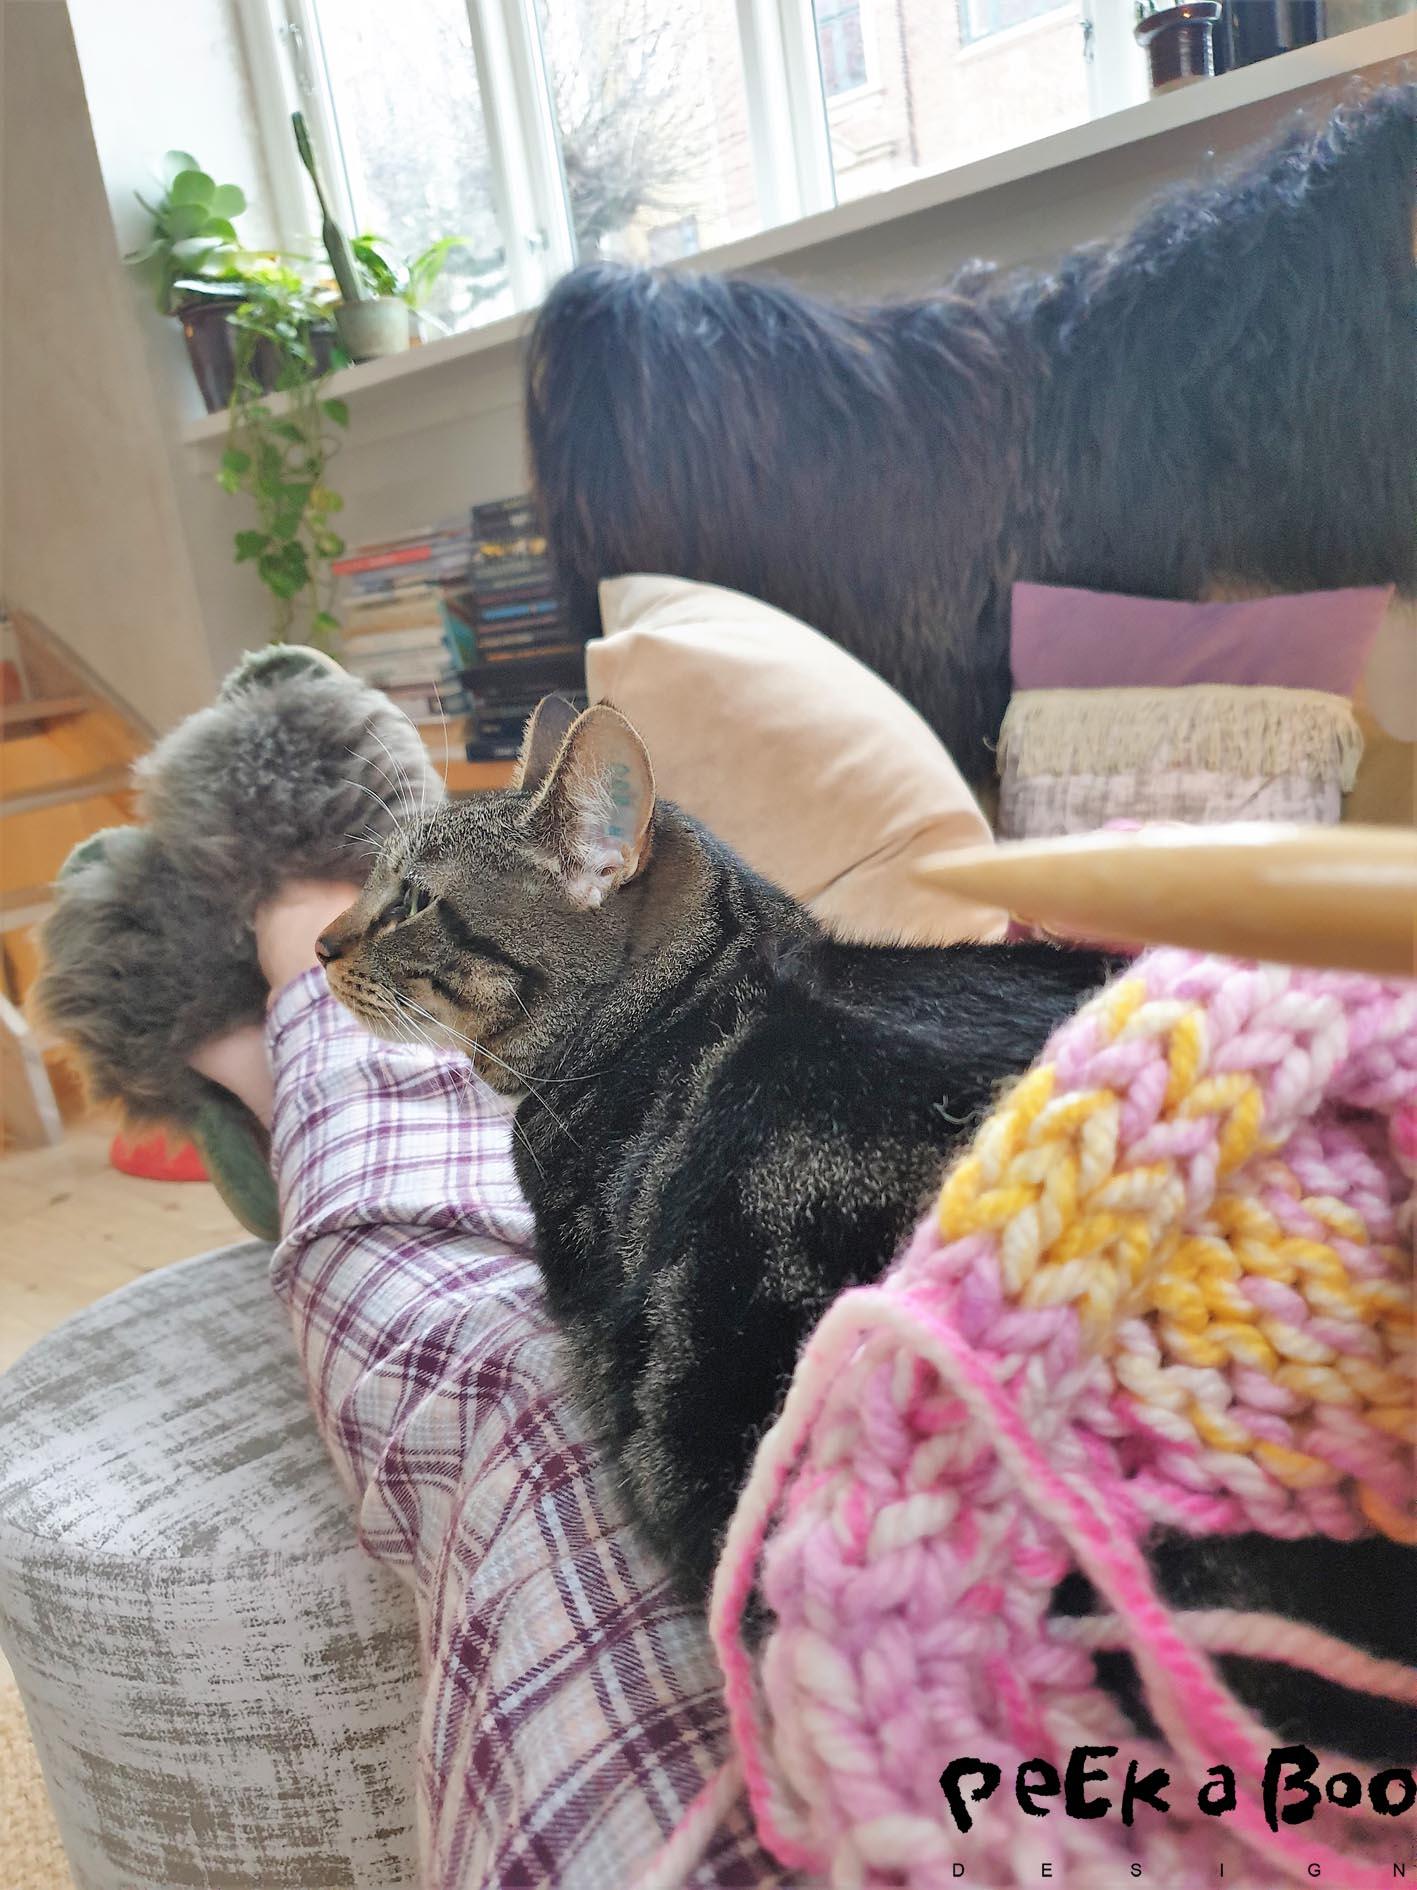 The days after the operation I spend in my py with Luna on my lap and knitting in my hands.